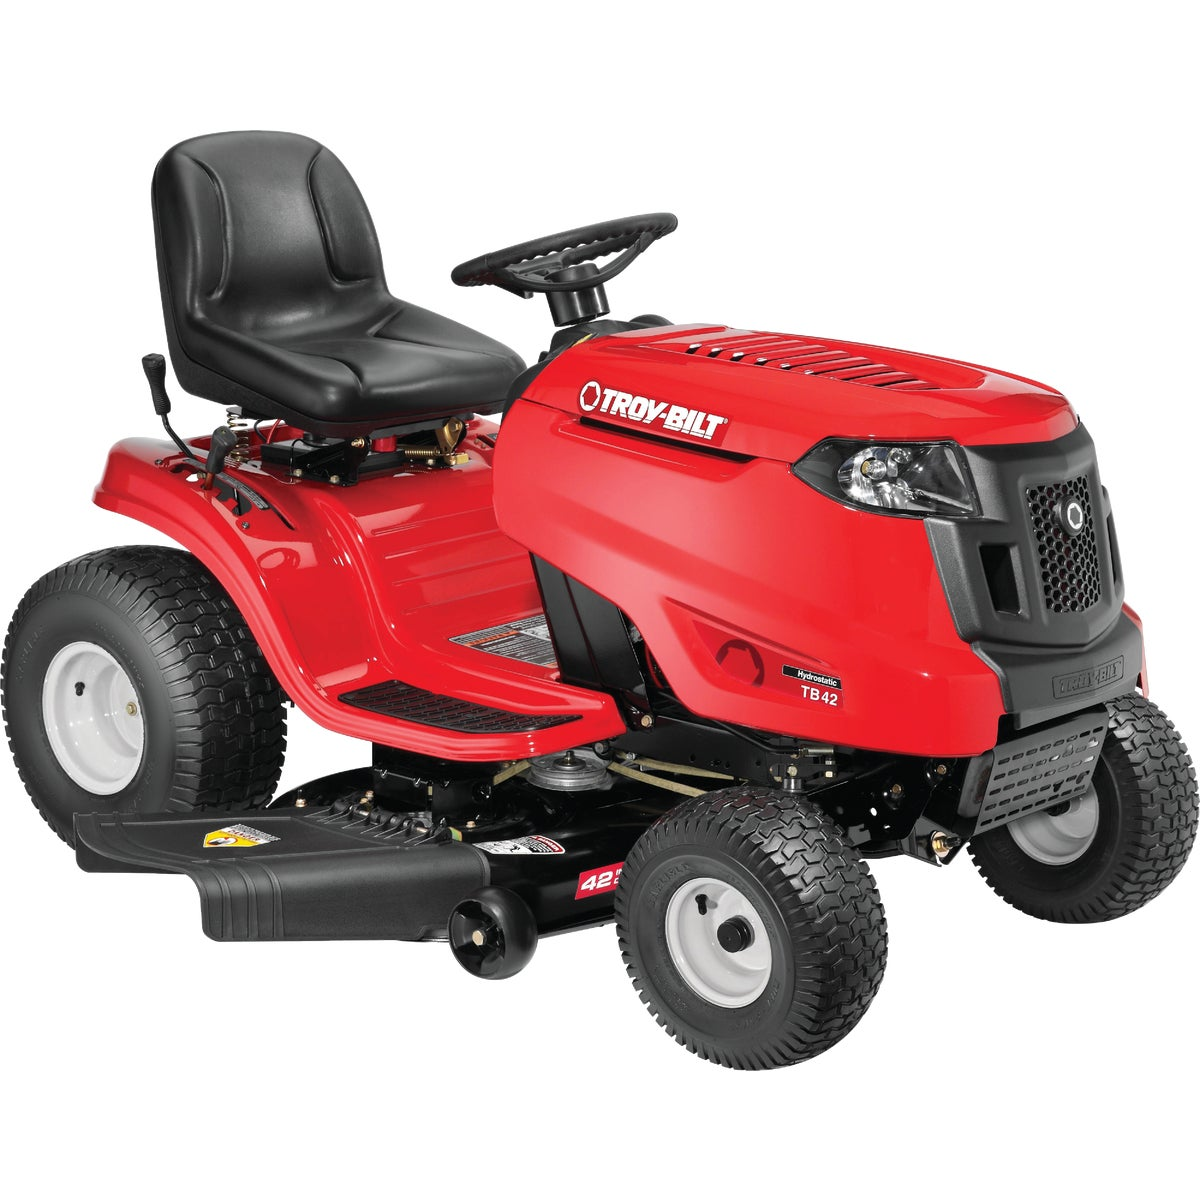 "42"" HYDRO LAWN TRACTOR - 13AX795S004 by M T D Products"